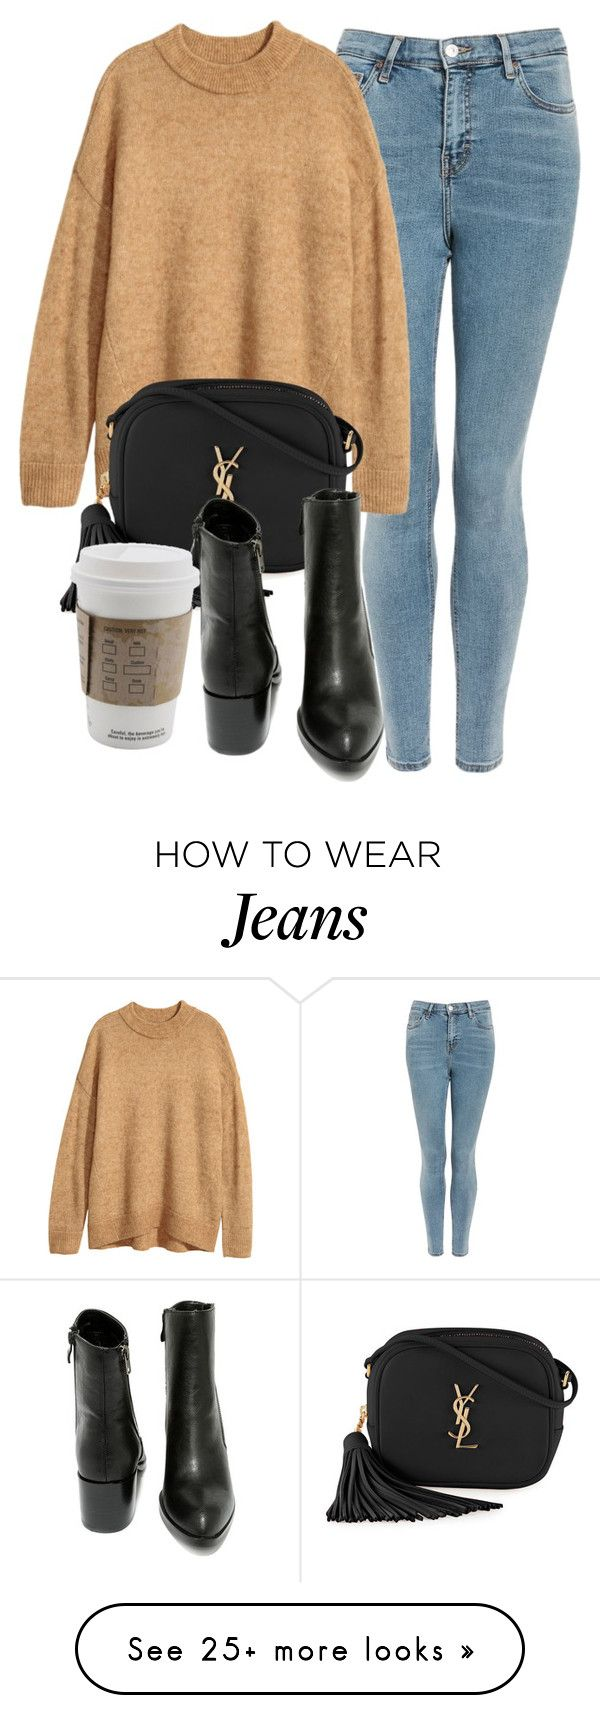 """""""Untitled #7072"""" by laurenmboot on Polyvore featuring Topshop, Yves Saint Laurent and Very Volatile"""